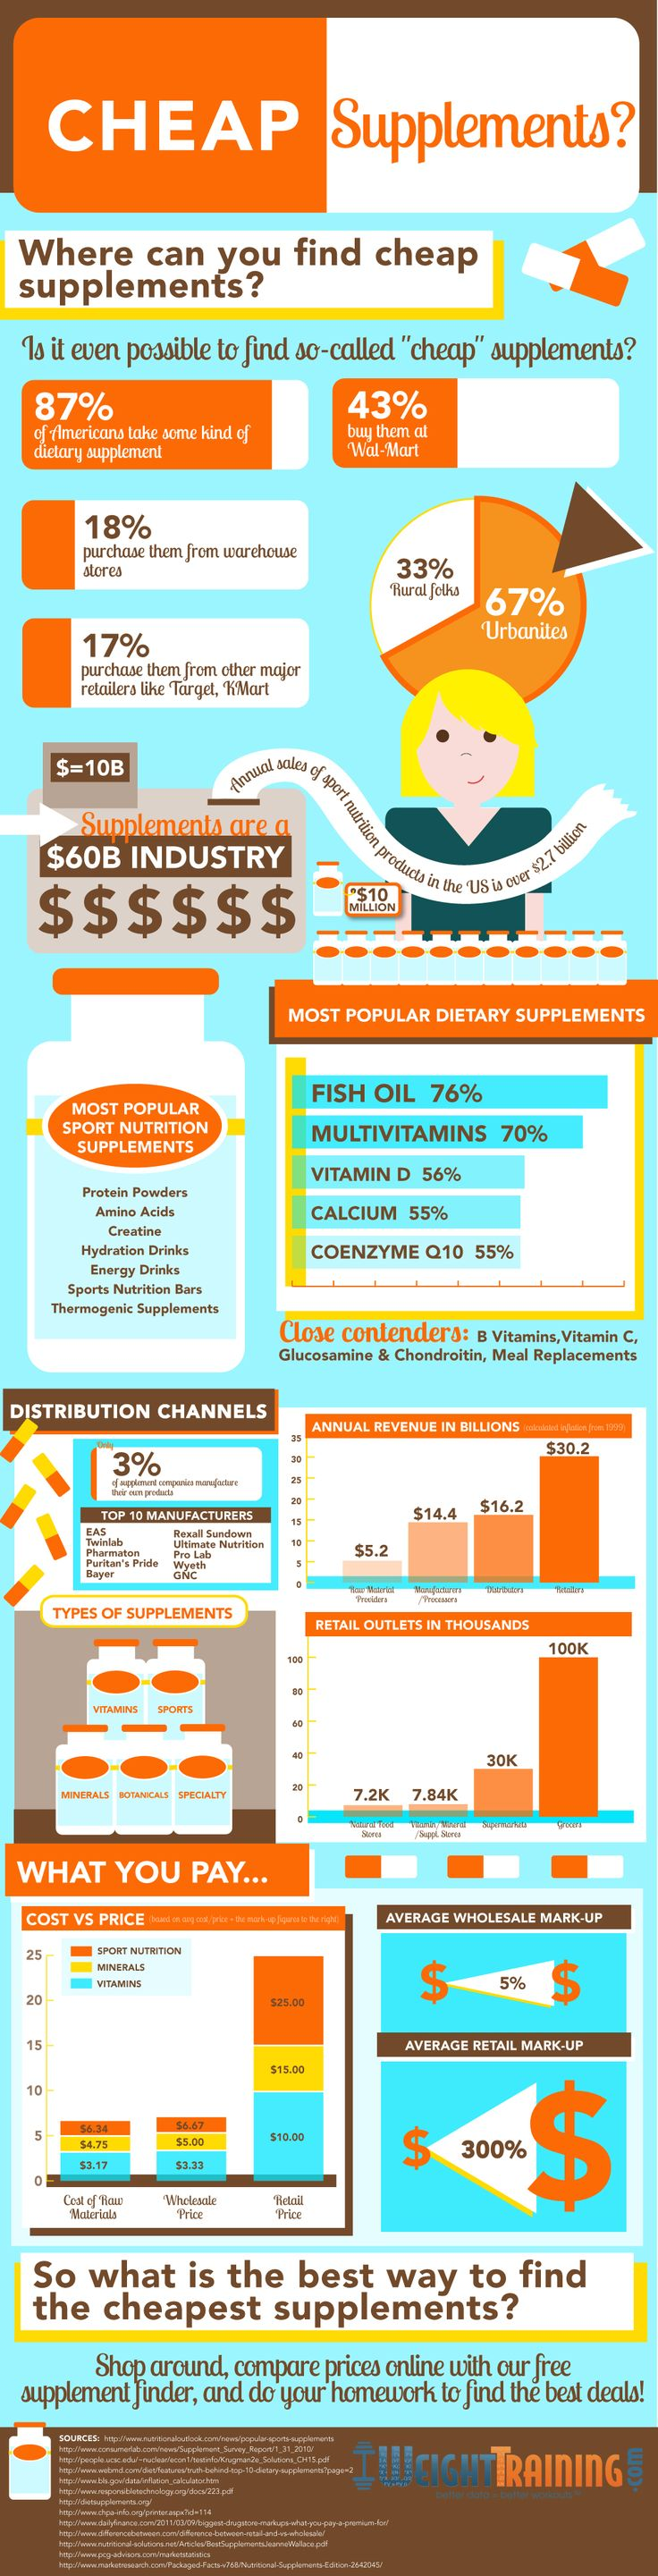 Supplements to expensive? This information will help you find the cheapest supplements!